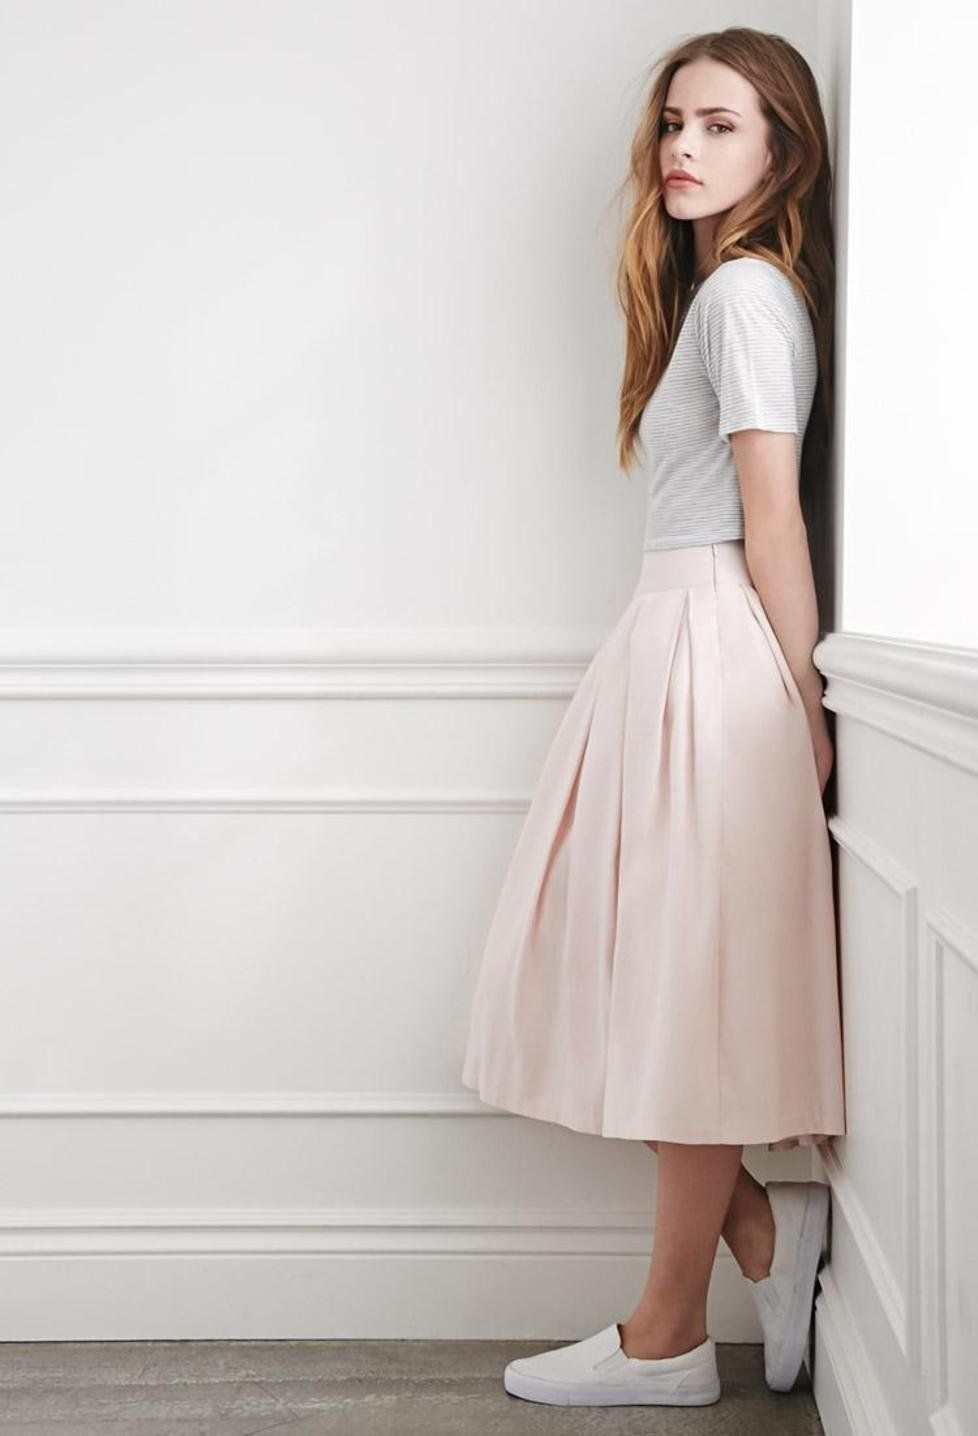 Pleated Midi Skirt http://picvpic.com/women-skirts-midi-skirts ...